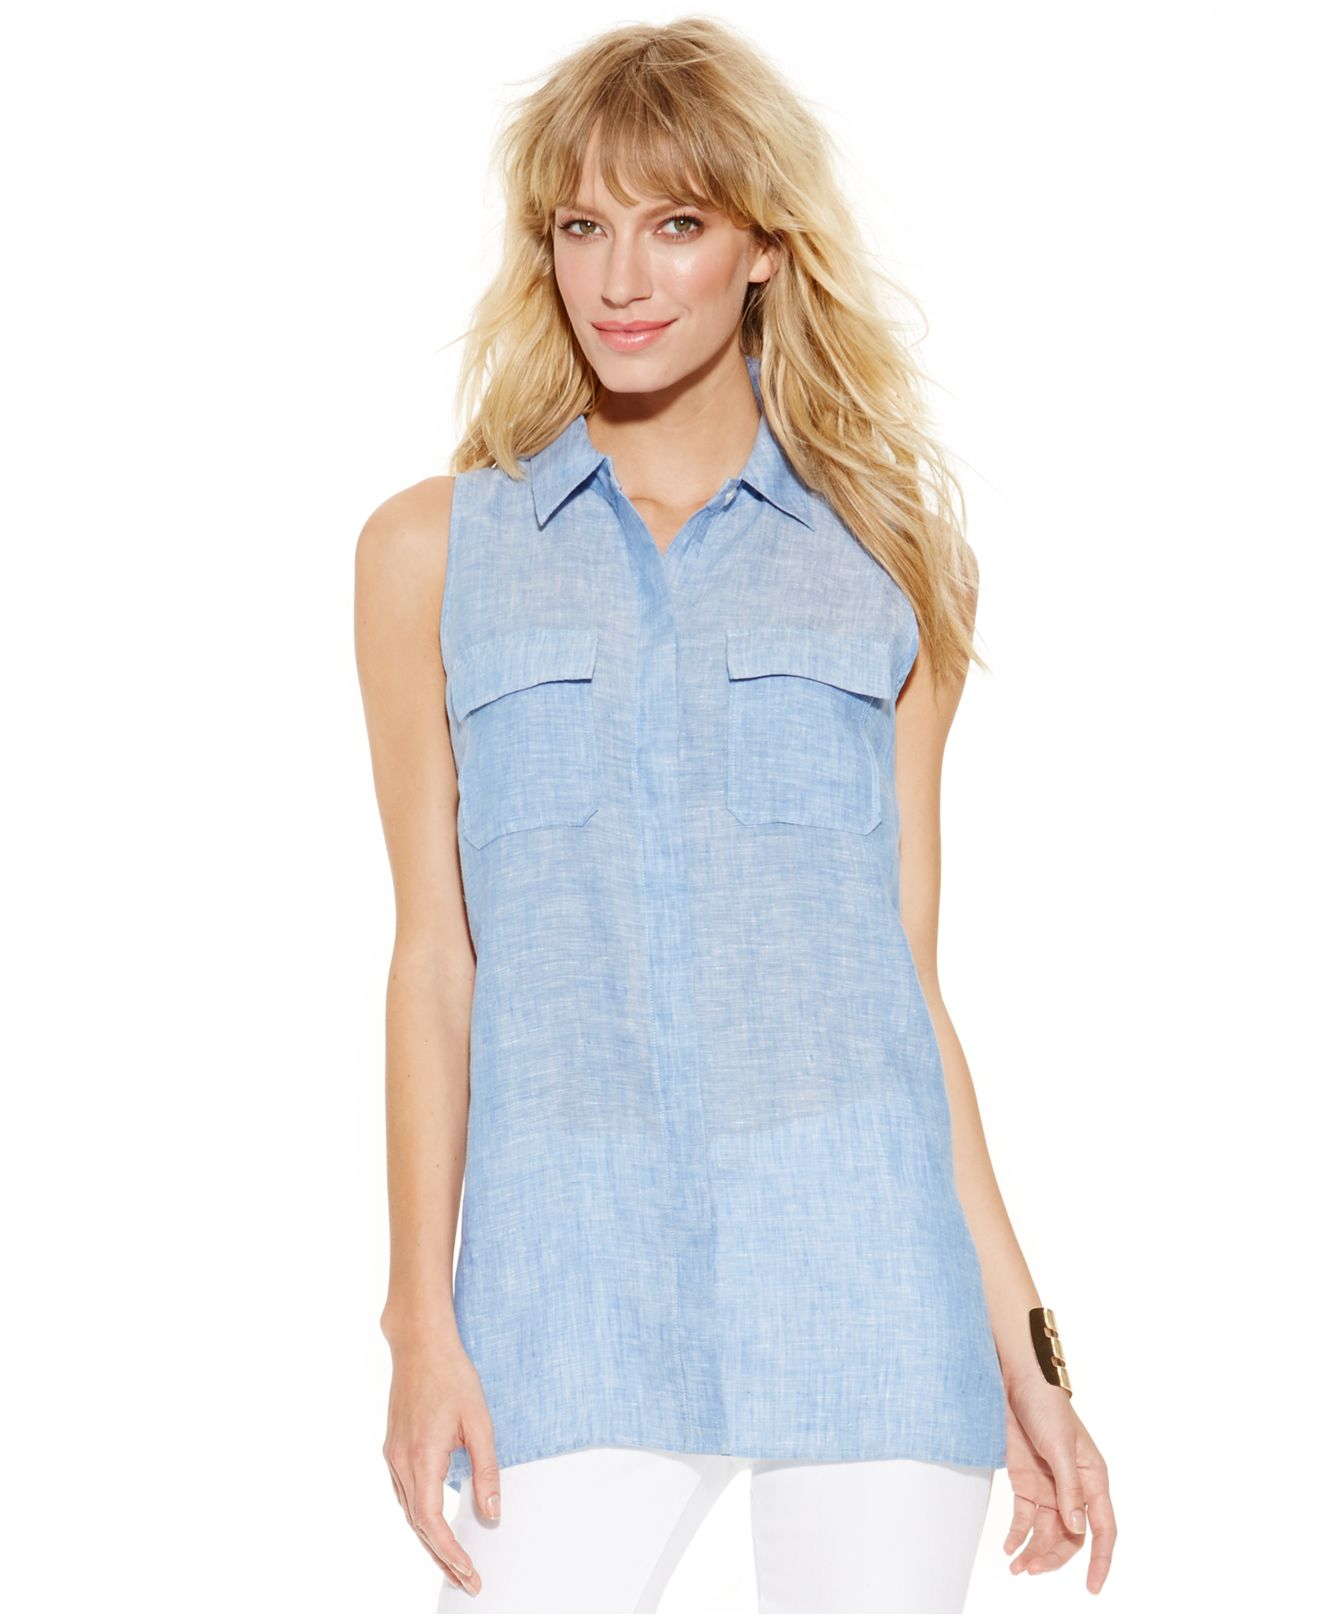 Find sleeveless linen tops at ShopStyle. Shop the latest collection of sleeveless linen tops from the most popular stores - all in one place.